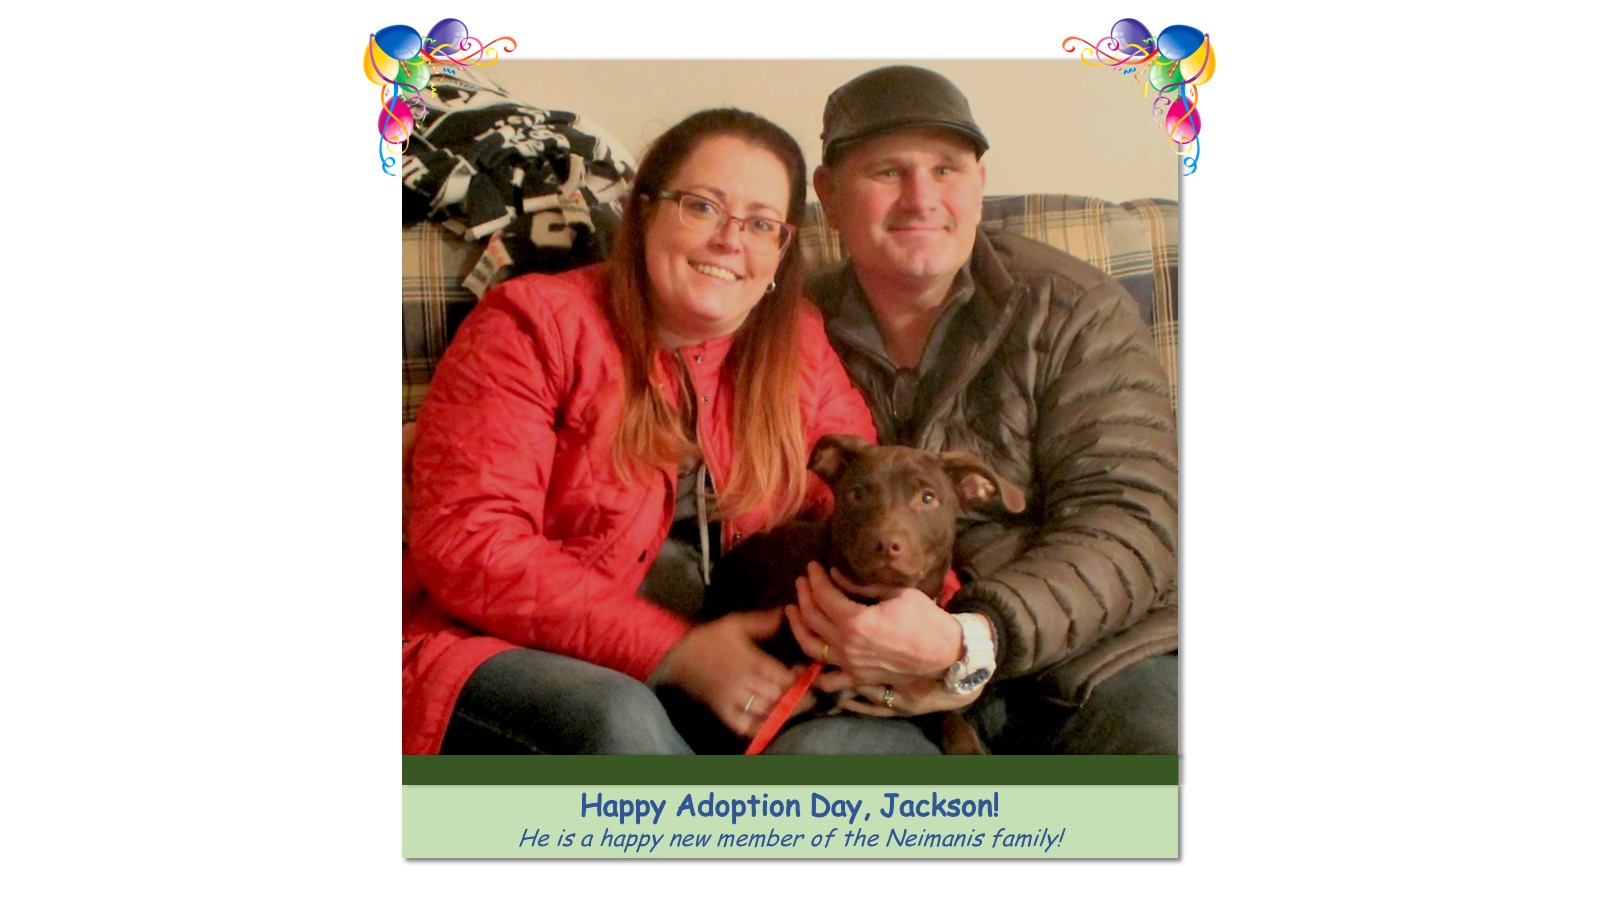 Jackson_Adoption_Photo43661.jpg